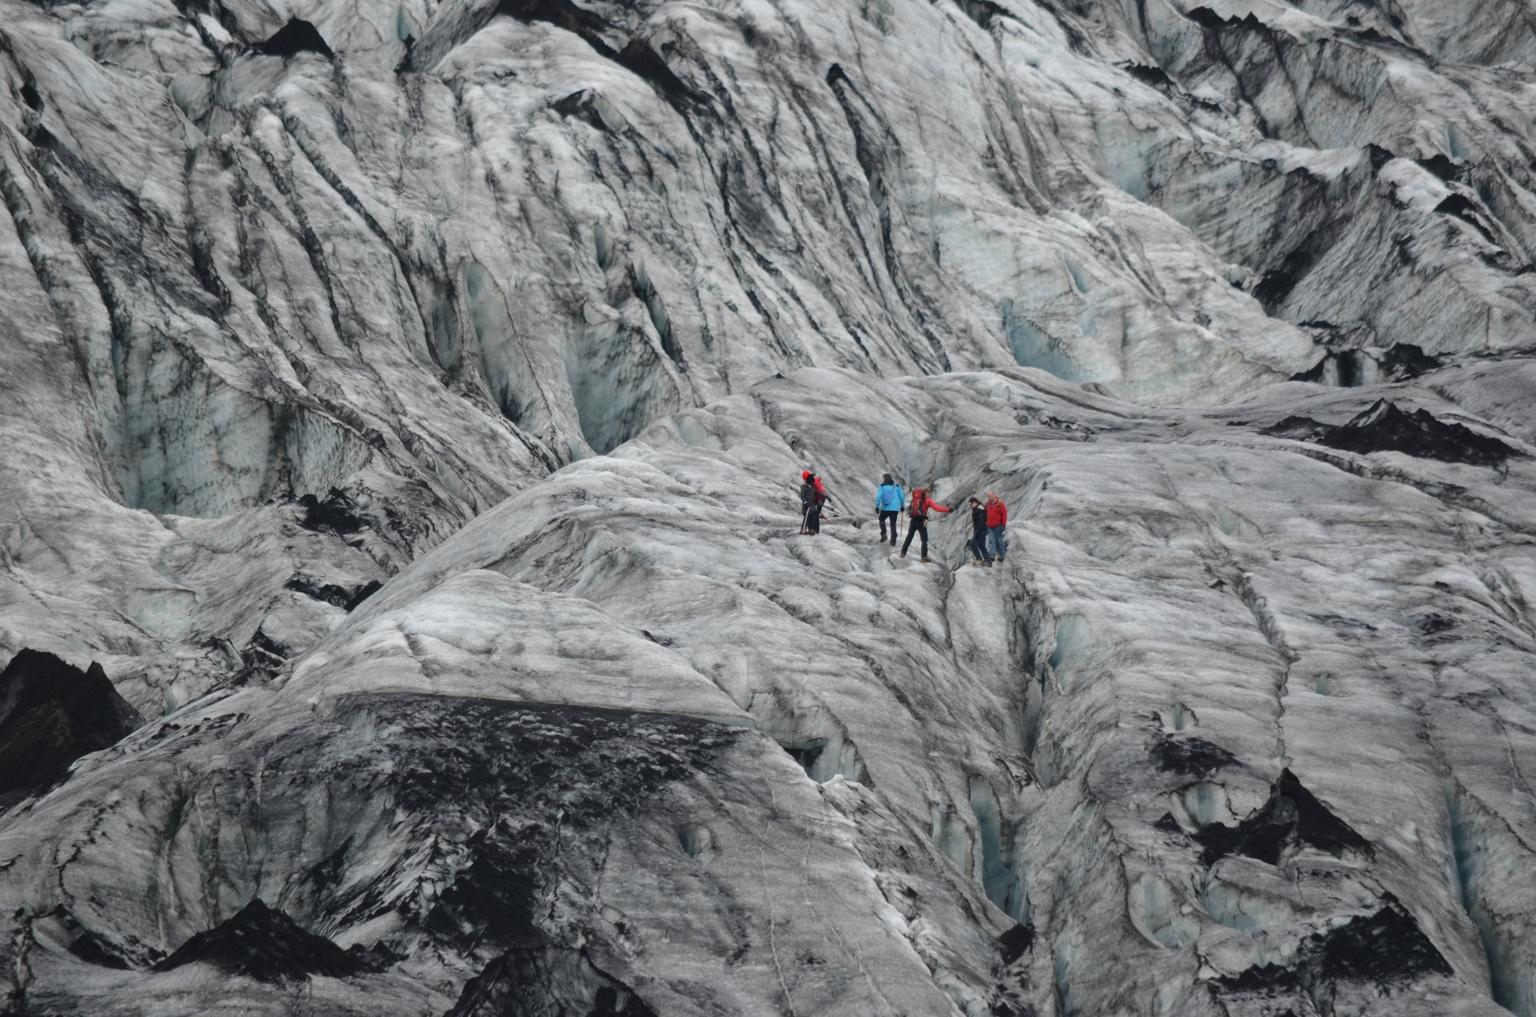 RT @alexisaverbuck: Crossing a crevasse at Sólheimajökull glacial tongue in south #iceland. http://t.co/dA1r0qCGKp #lp #travel